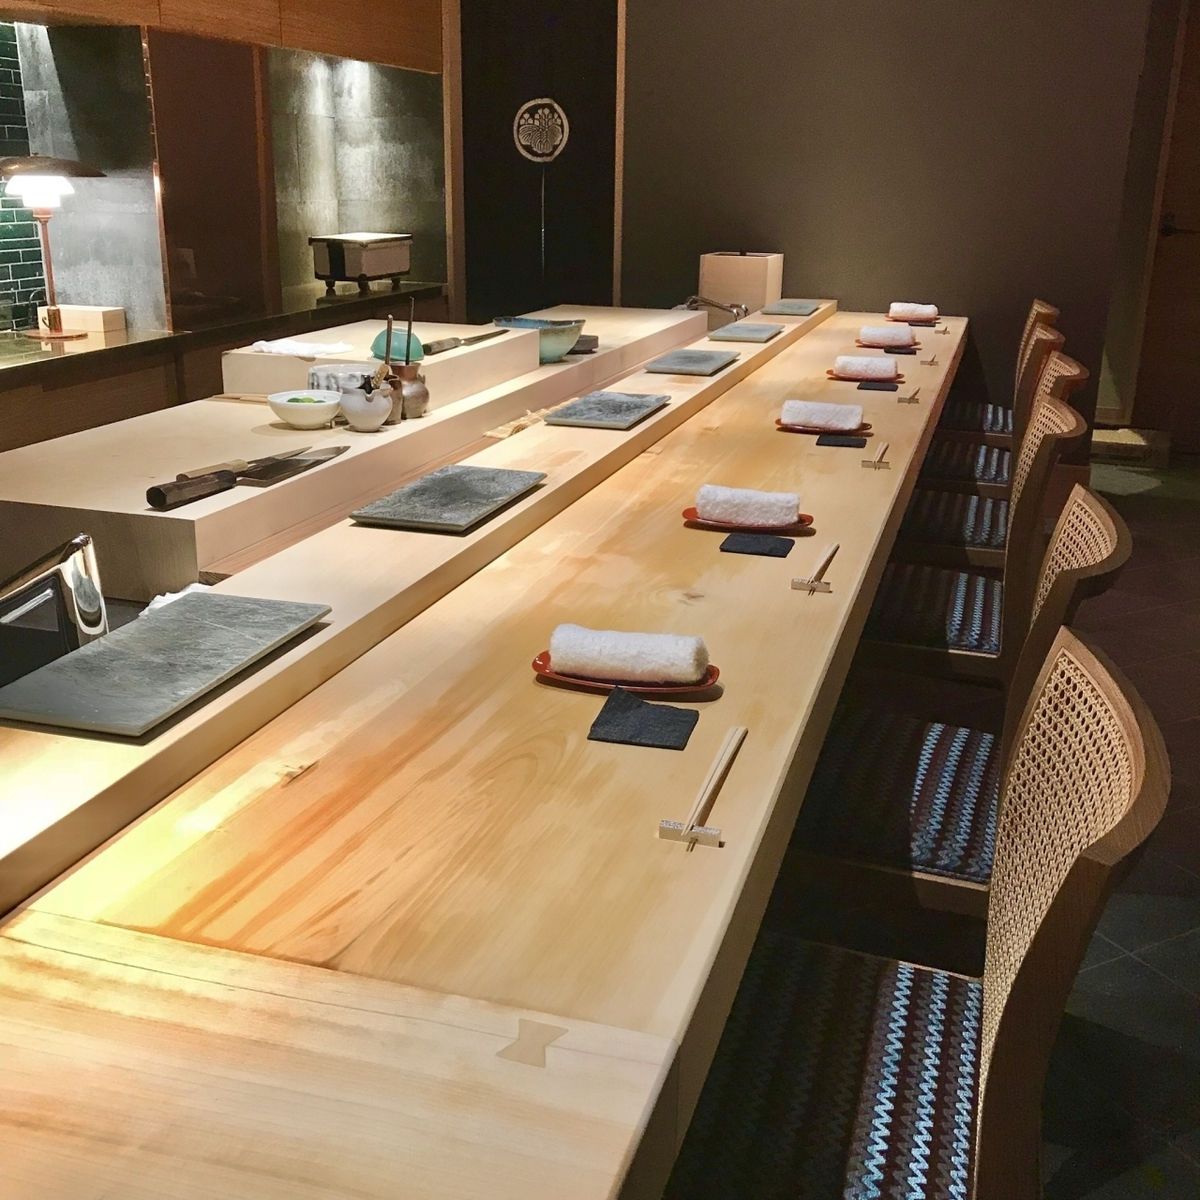 A modern interior with sense.Please relax with peace alone.Counter seats can enjoy the general skills in front of you.